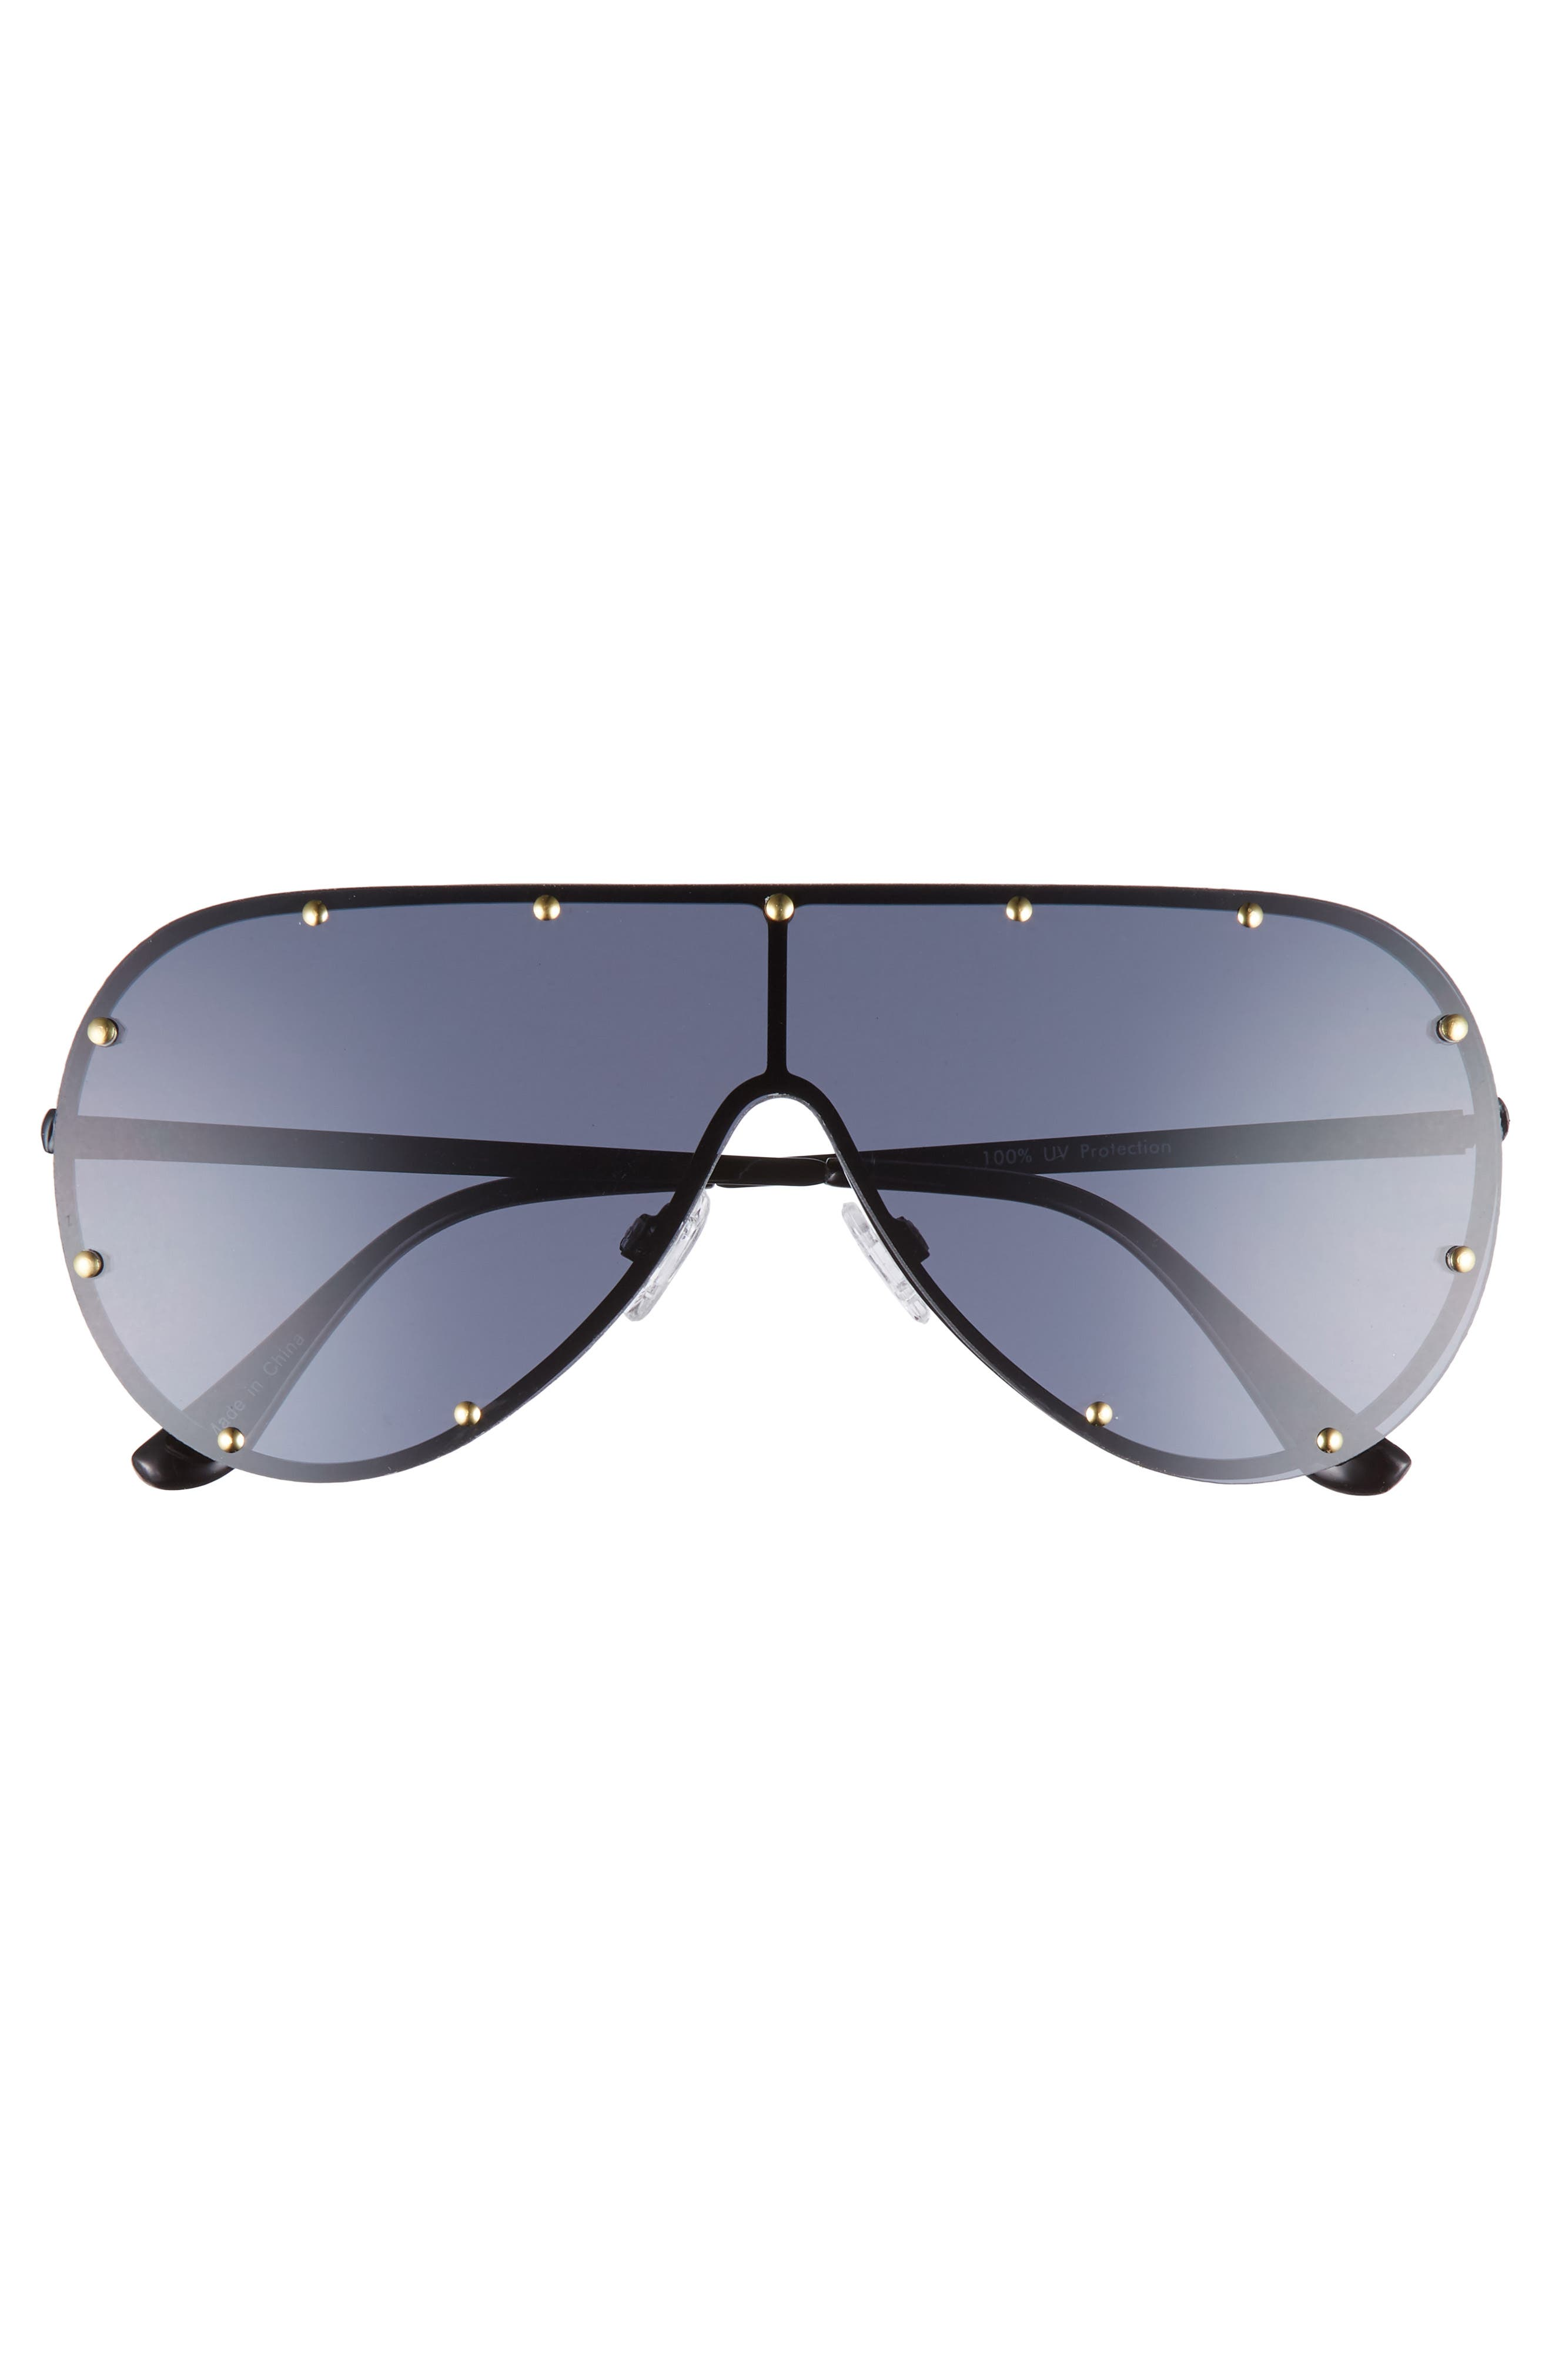 65mm Studded Shield Sunglasses,                             Alternate thumbnail 3, color,                             Black